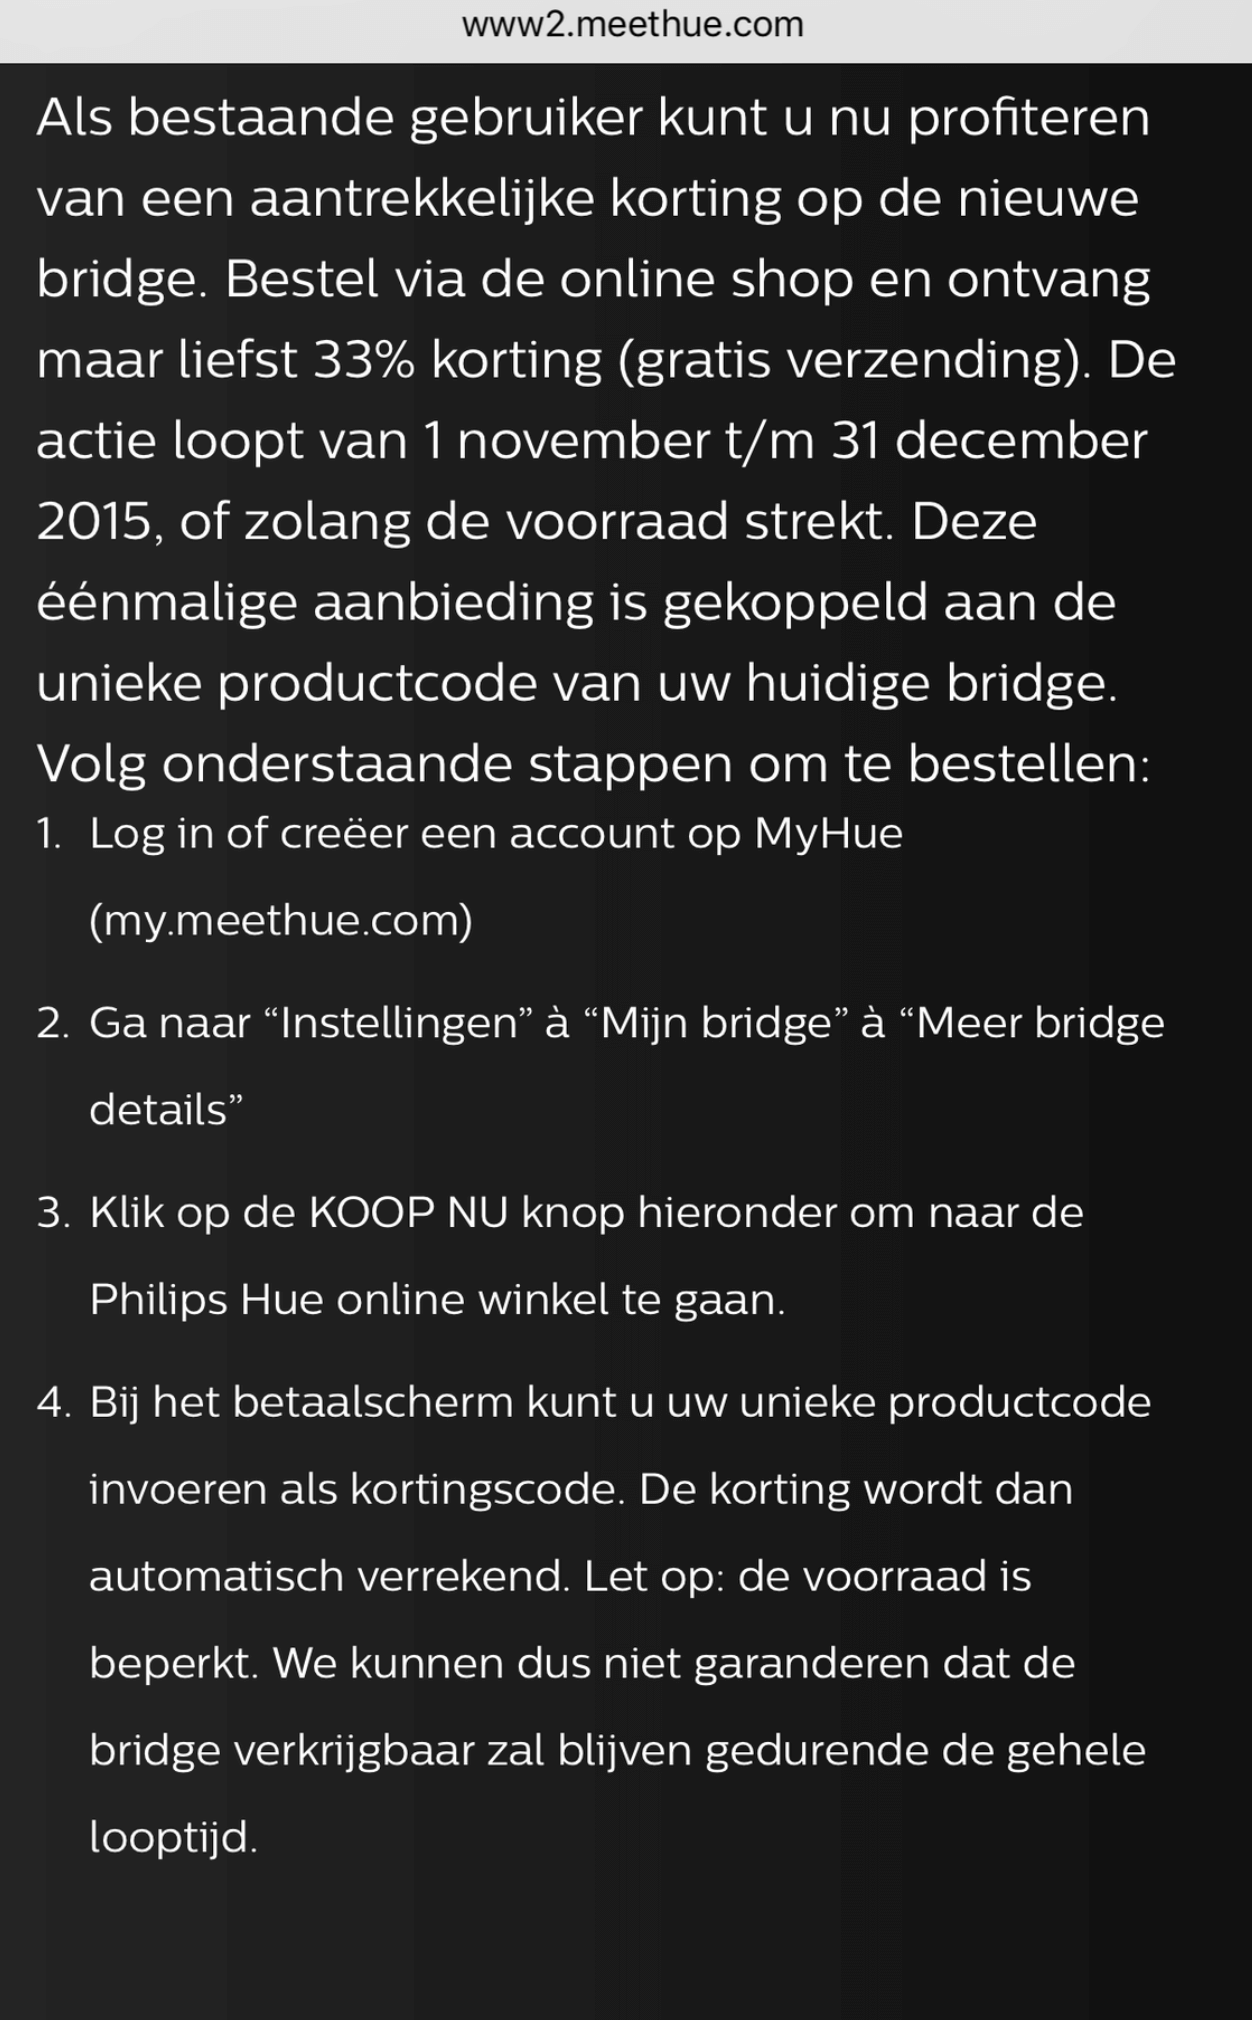 Philips hue bridge actie 2015